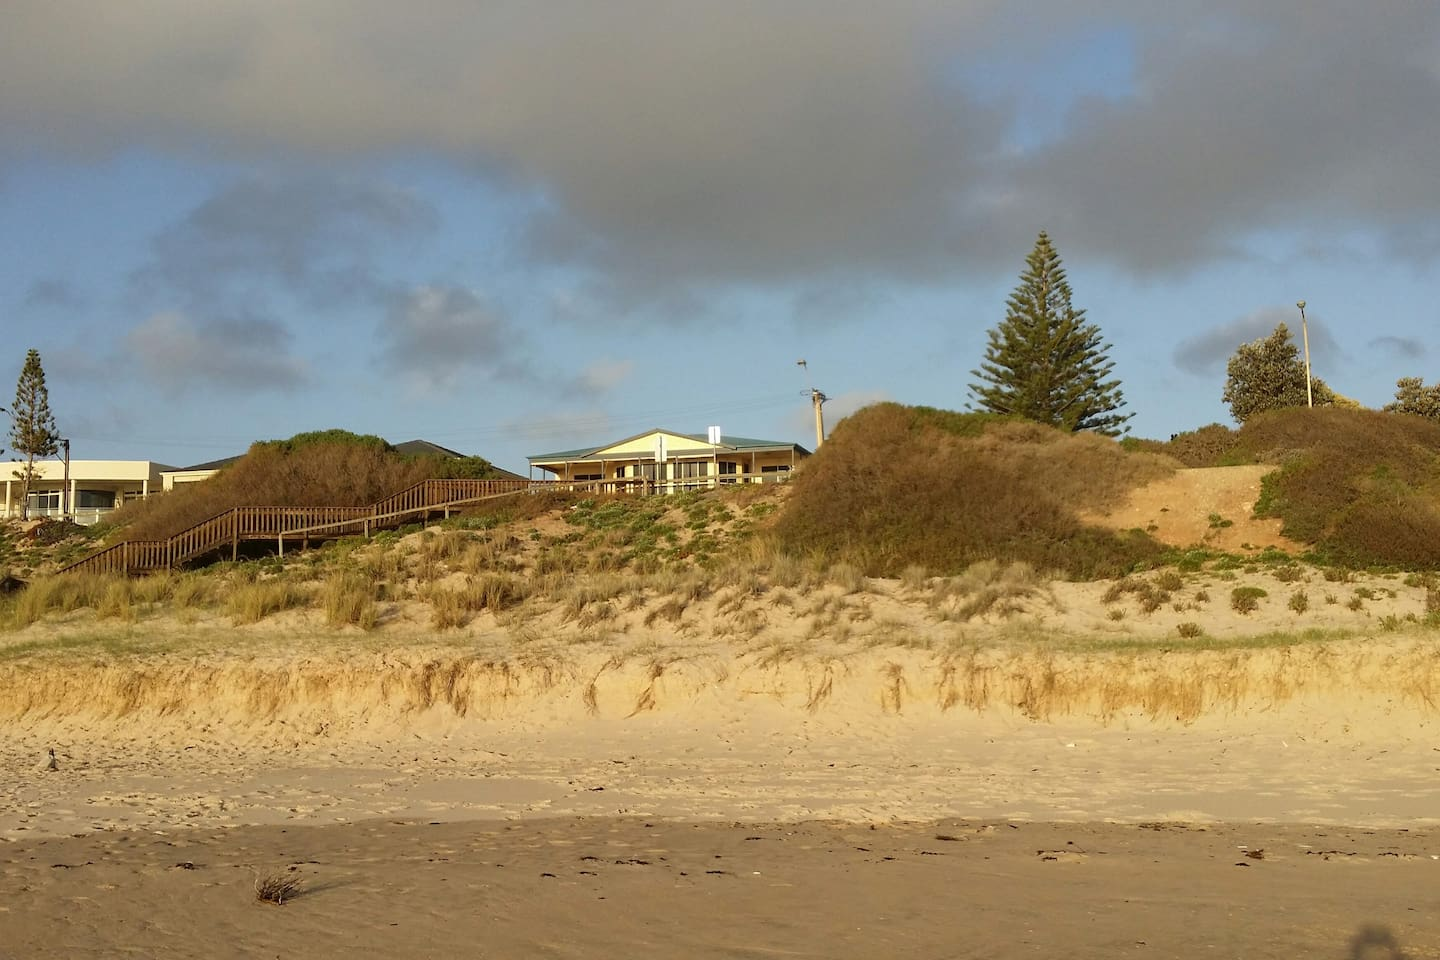 Looking at the accommodation from the beach